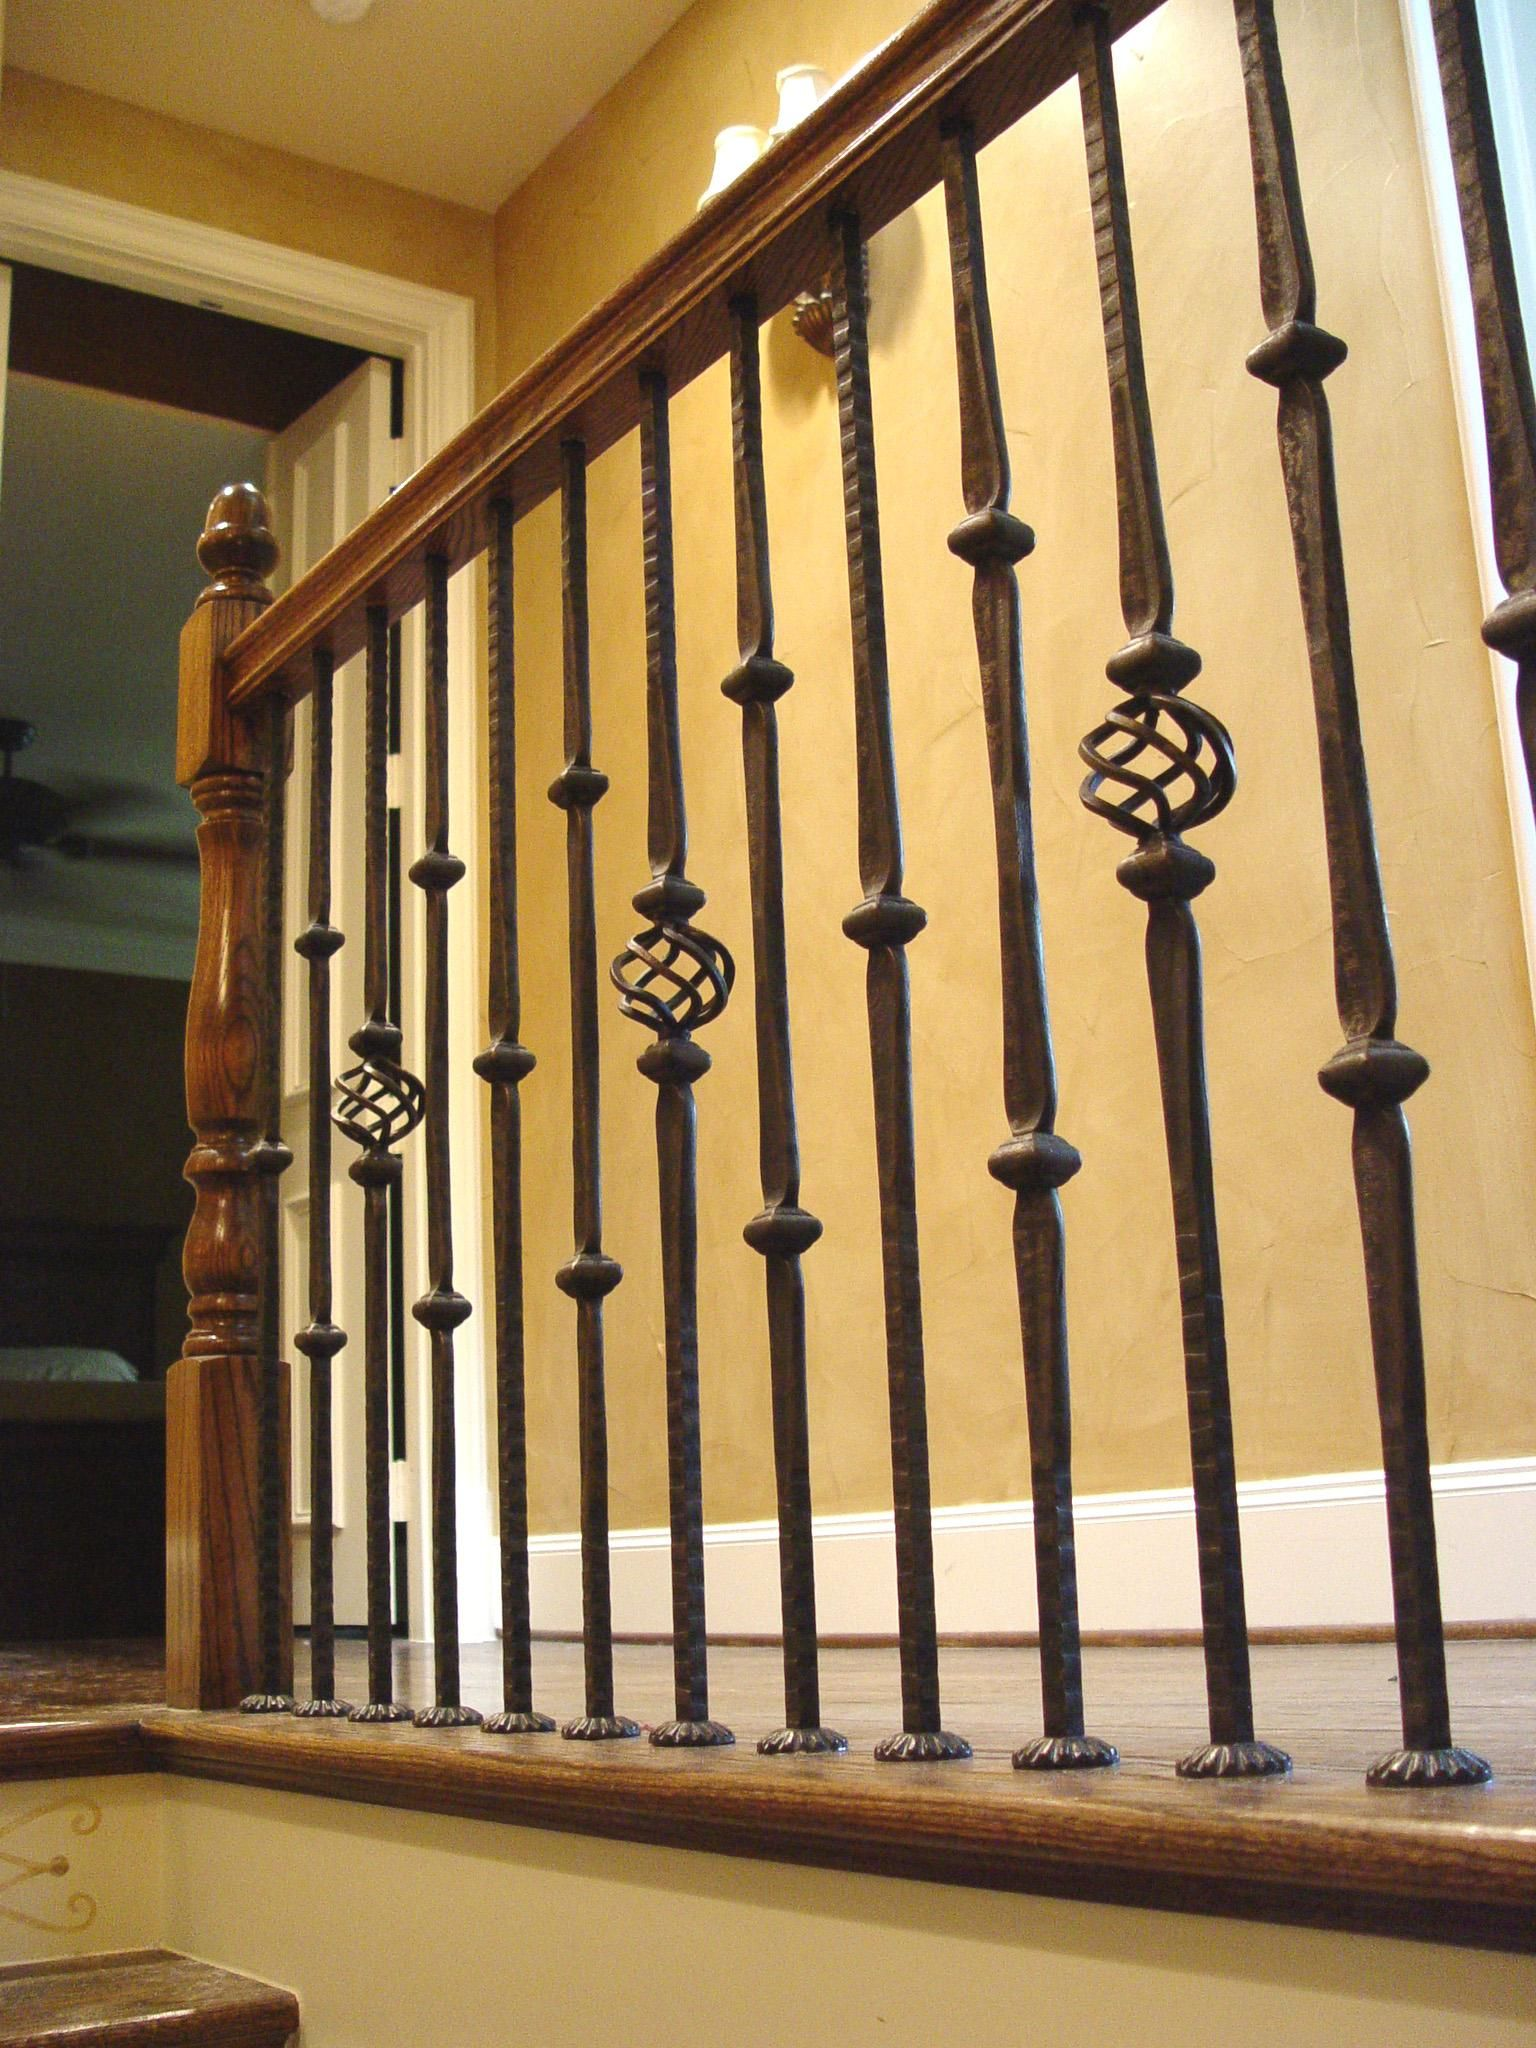 Wrought Iron Staircase Designs Wrought Iron Panels For Stairs Stairs Has Many Types